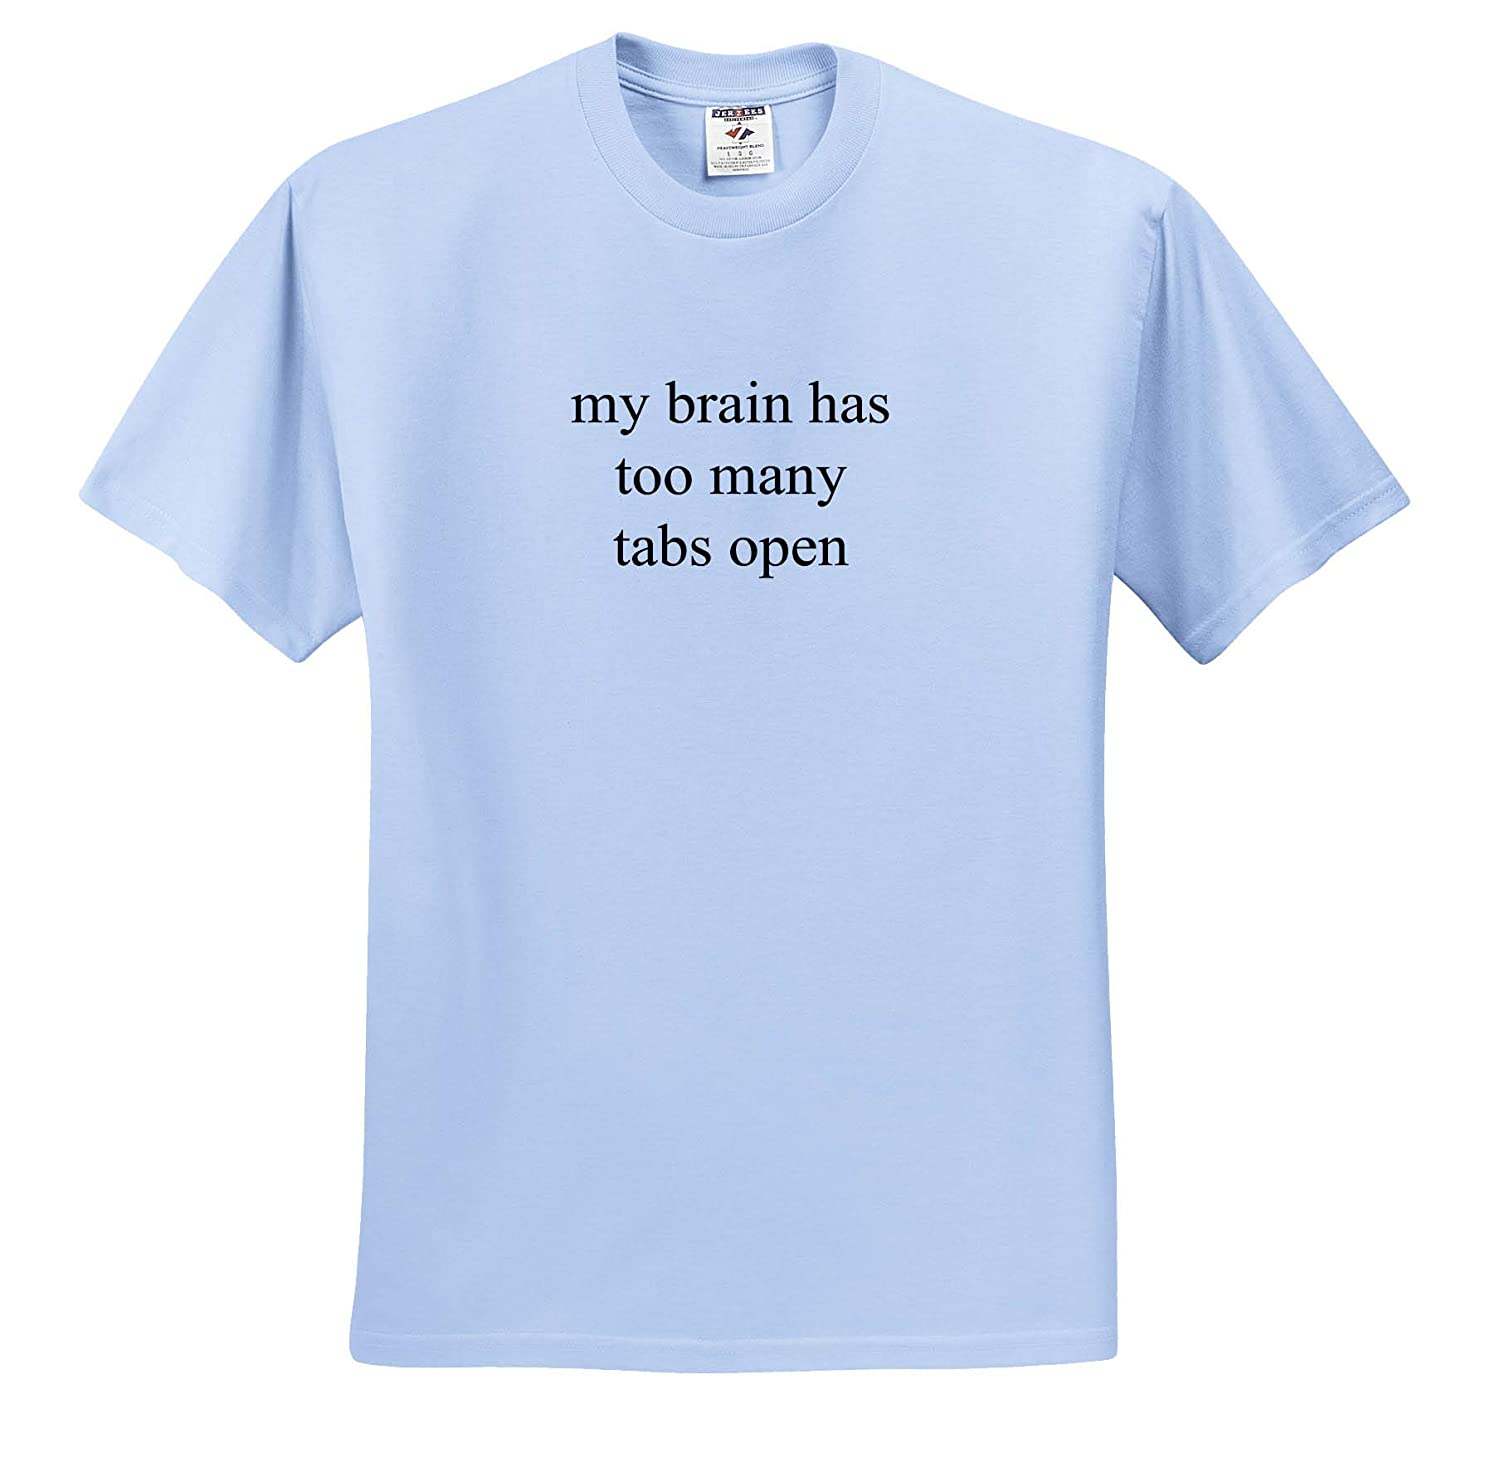 3dRose Gabriella-Quote ts/_317821 Adult T-Shirt XL Image of My Brain Has Too Many Tabs Open Quote